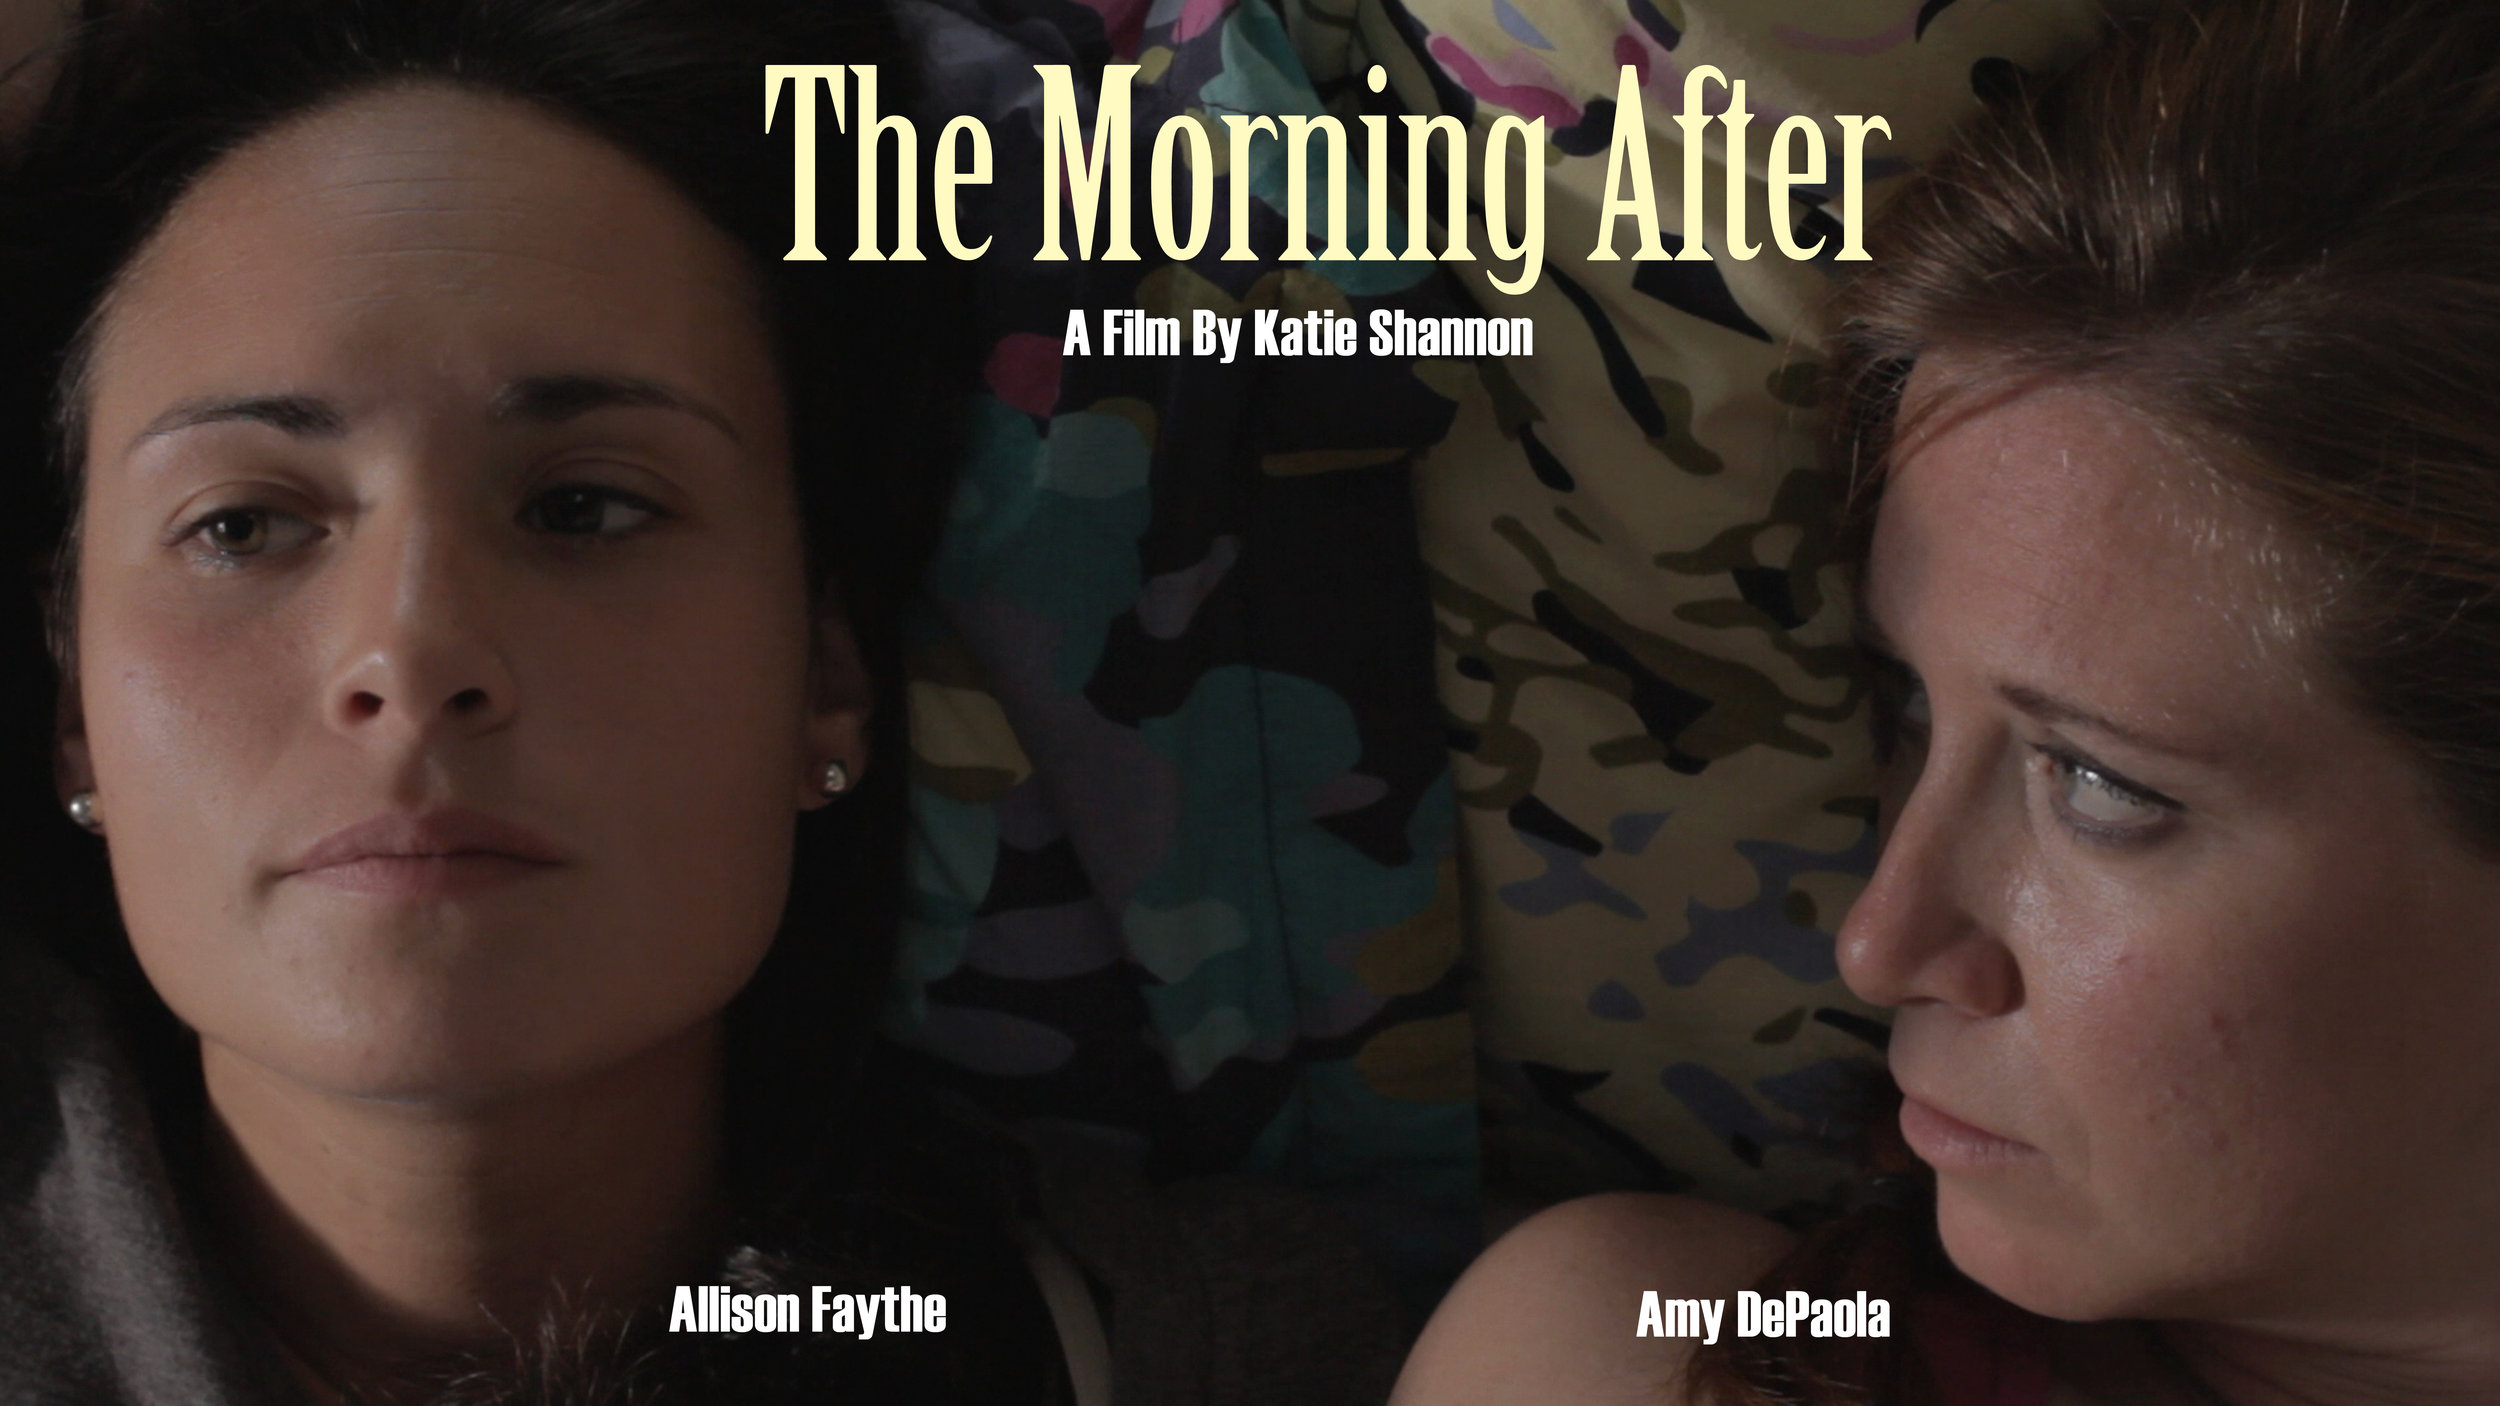 - The Morning After follows a couple as they try to figure out what's next in their relationship.